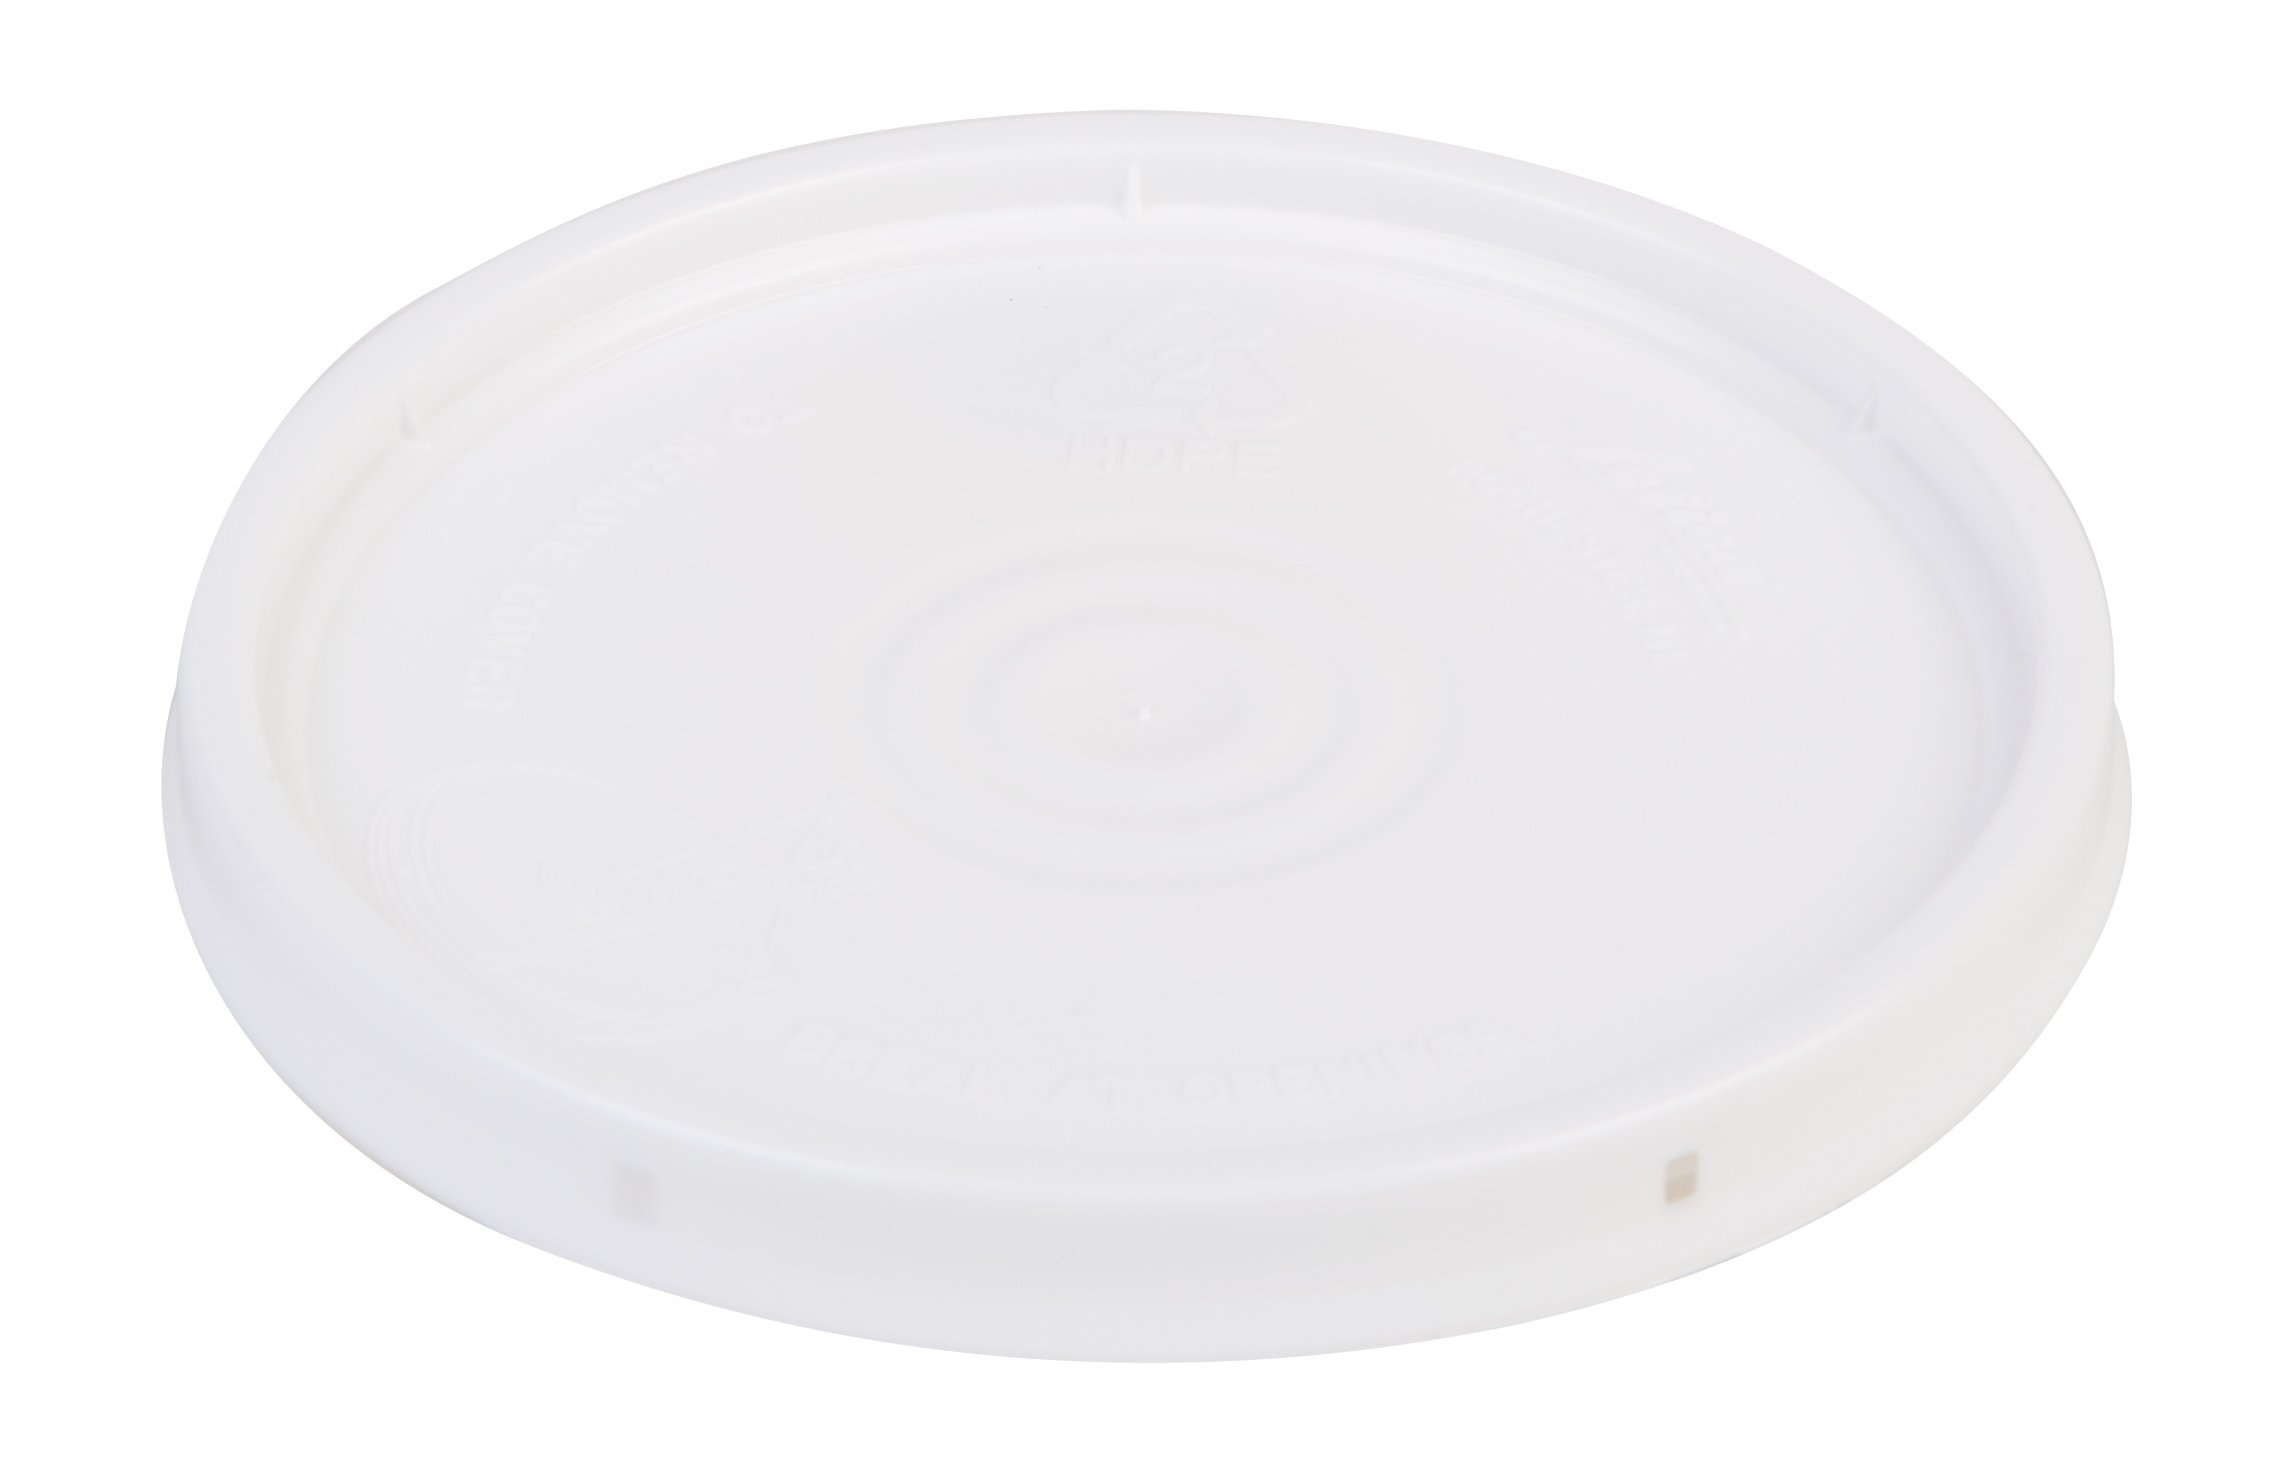 Hudson Exchange Premium Lid with Gasket for 1 Gallon Bucket, HDPE, White, 6 Pack